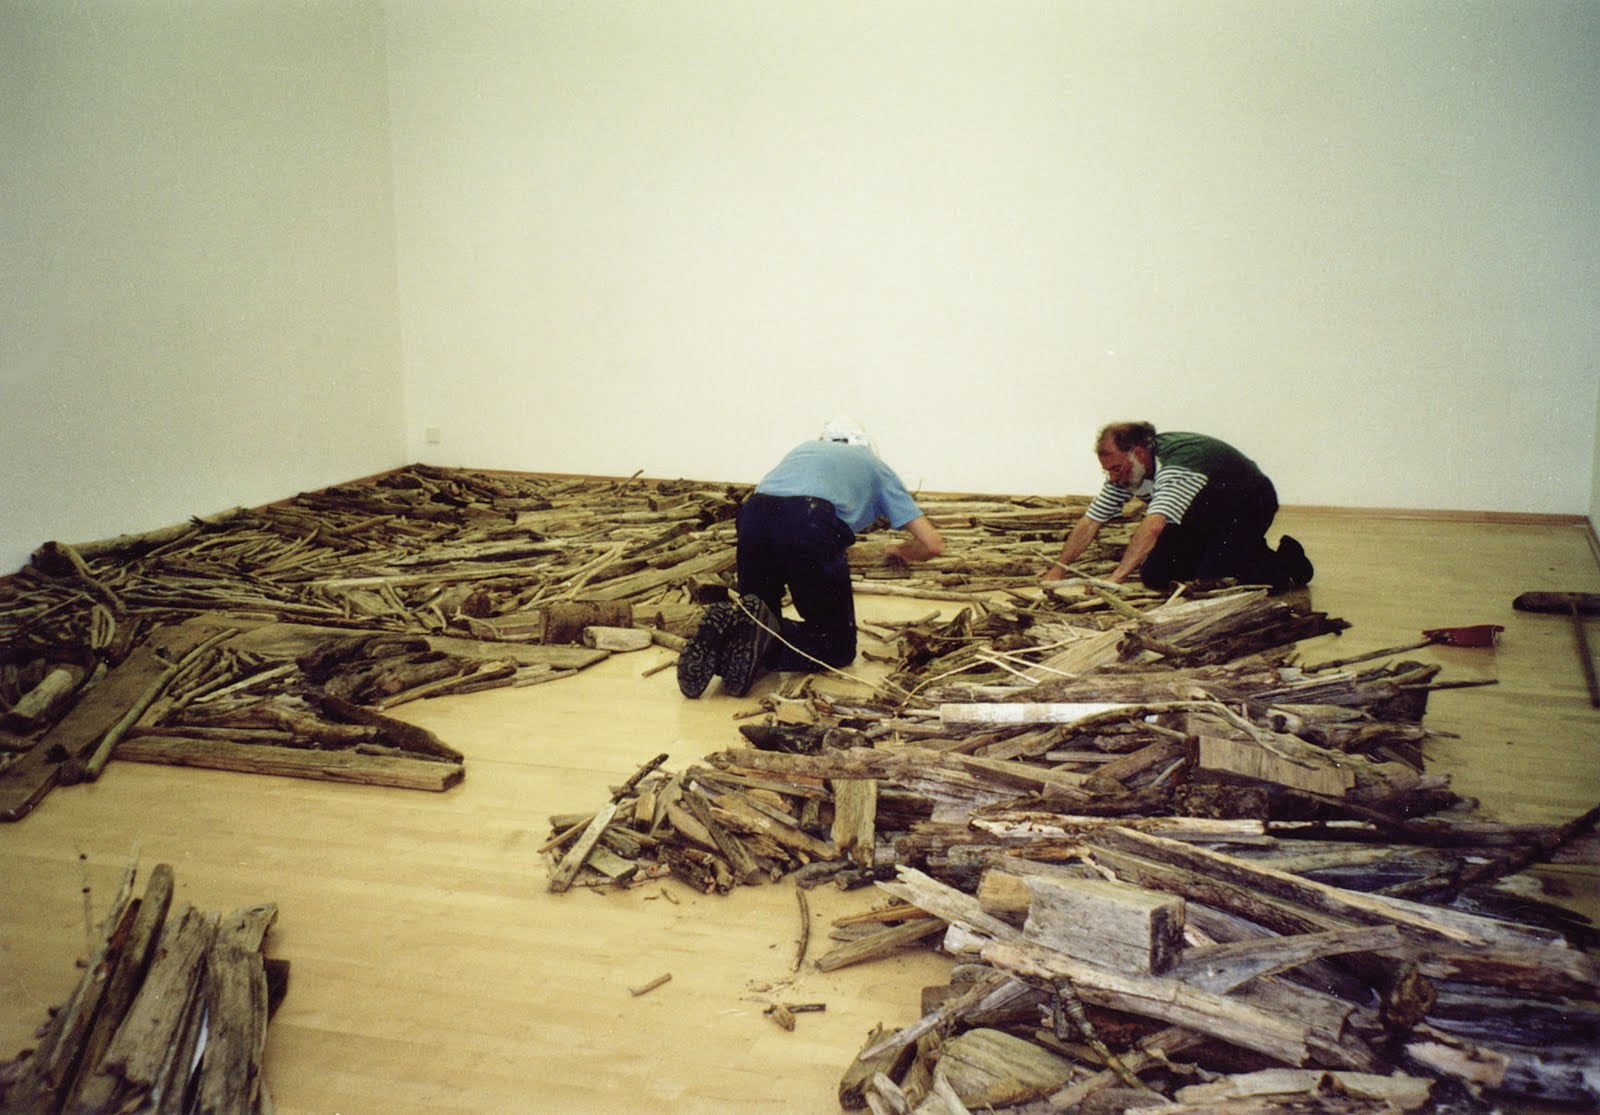 Gerard Vermeulen and Richard Long installing the work Rhine Driftwood for the exhibition Richard Long, Museum Kurhaus Kleve - photograph by PF, June 2001